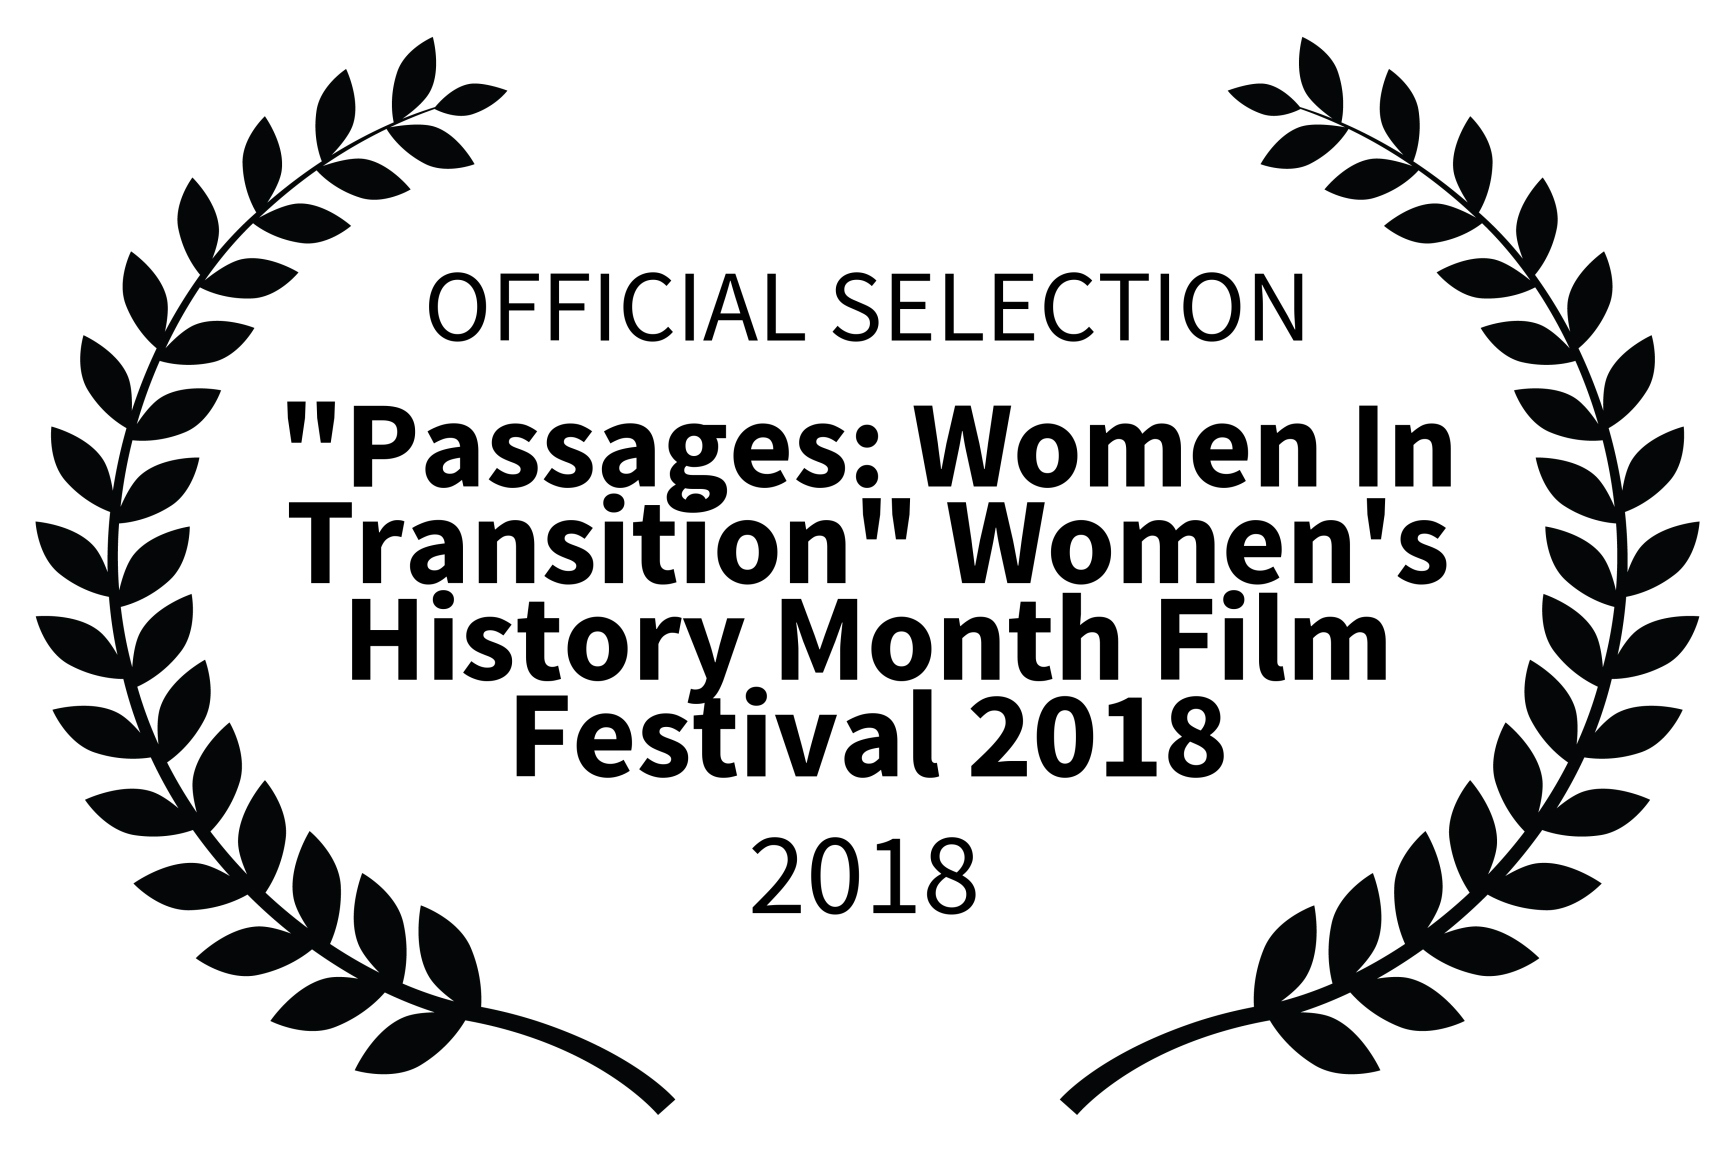 001_I_OFFICIAL SELECTION - Passages Women In Transition Womens History Month Film Festival 2018 - 2018 copy.jpg